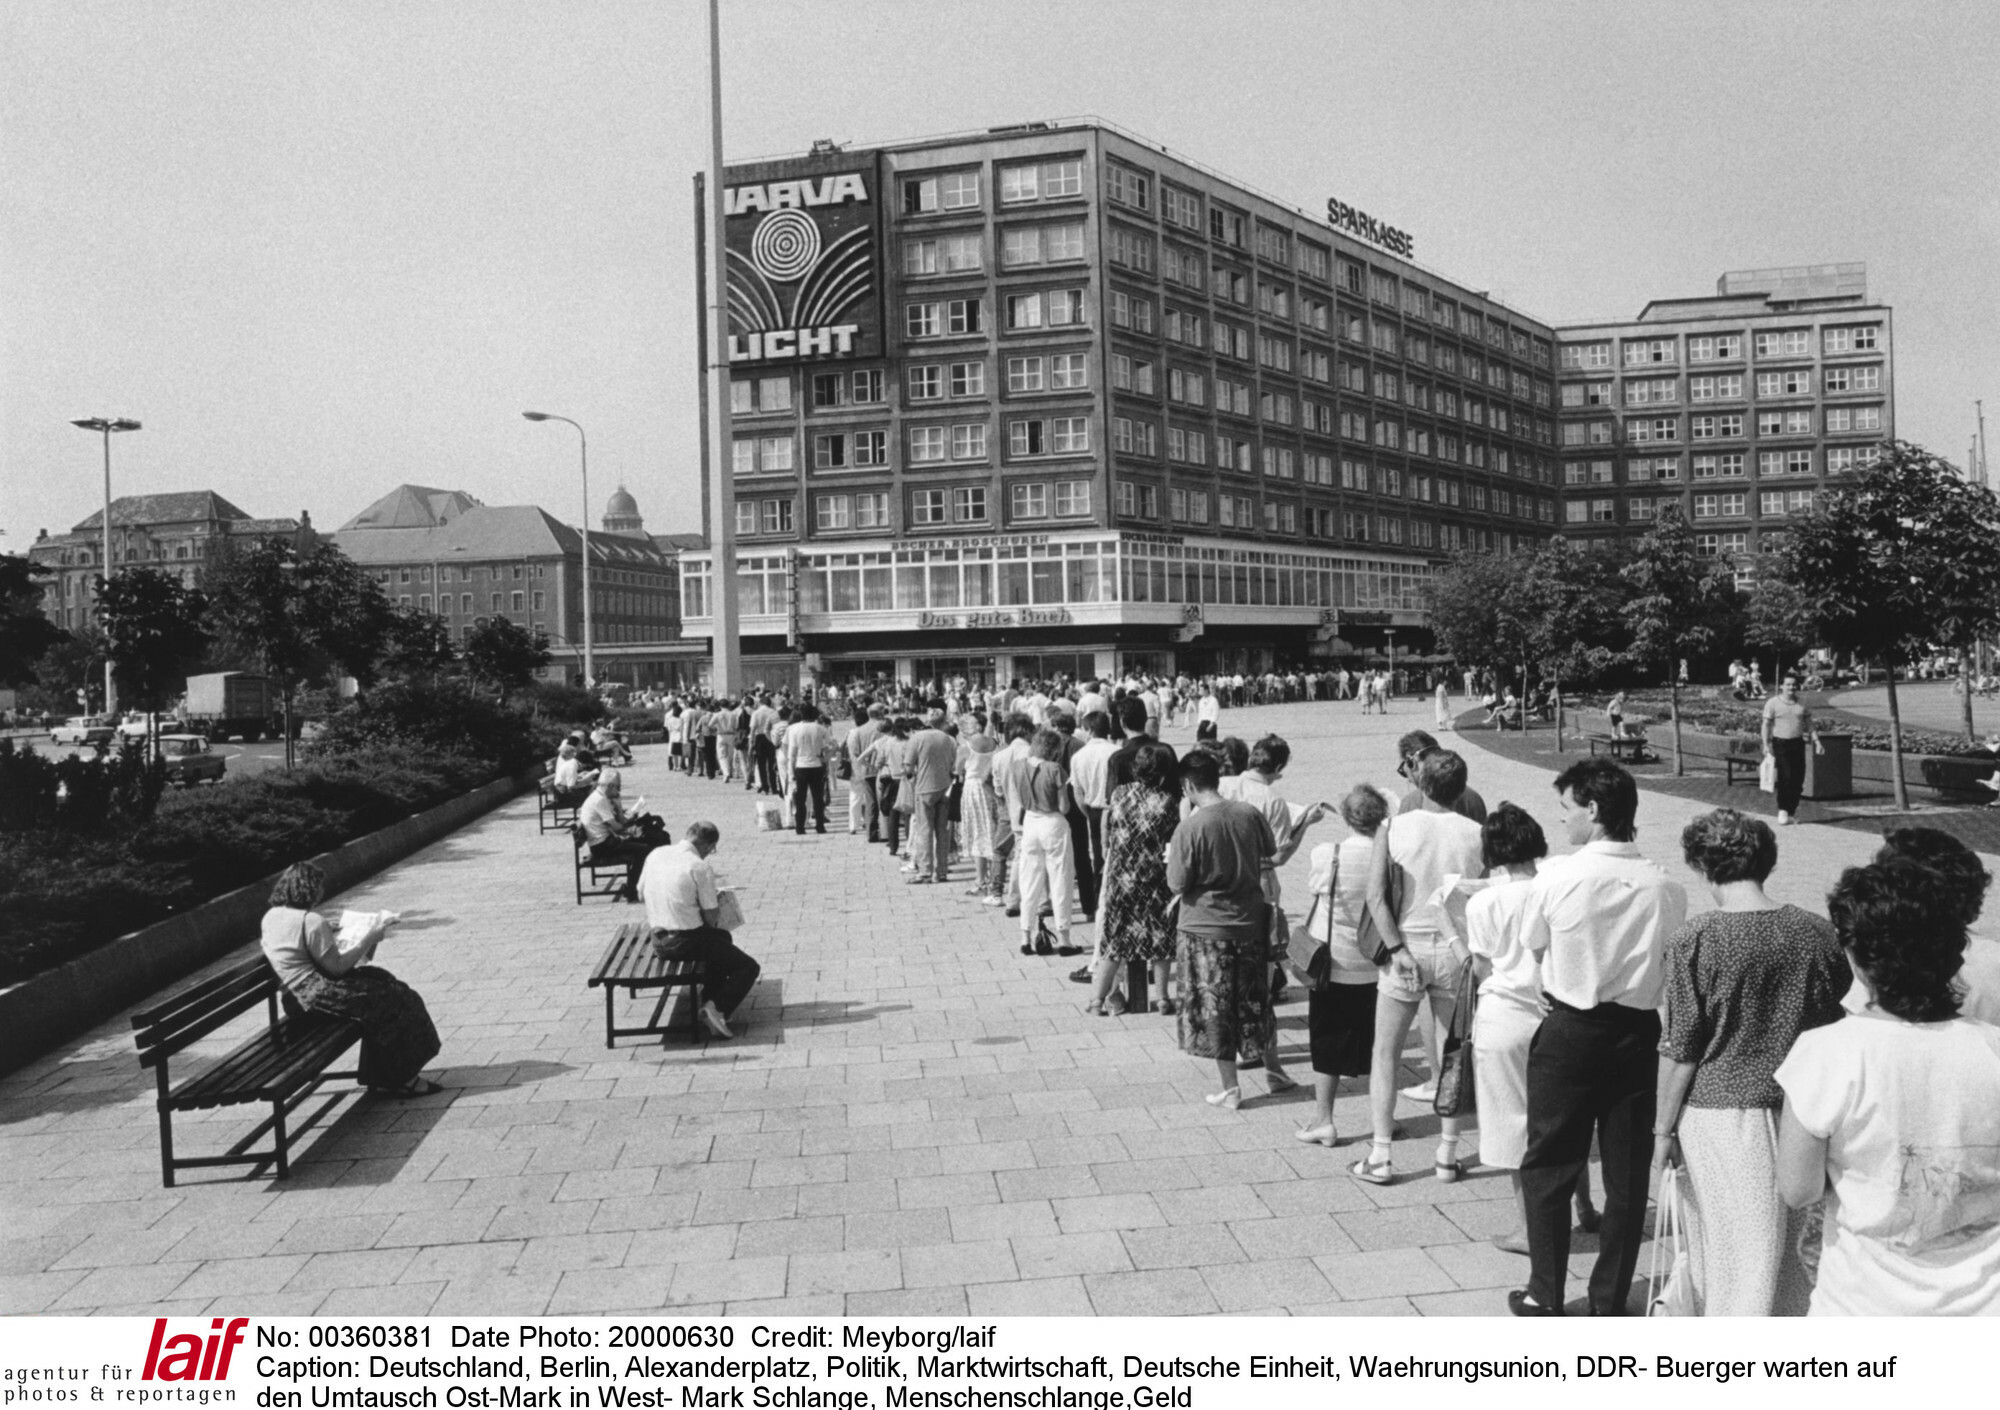 Alexanderplatz Bank